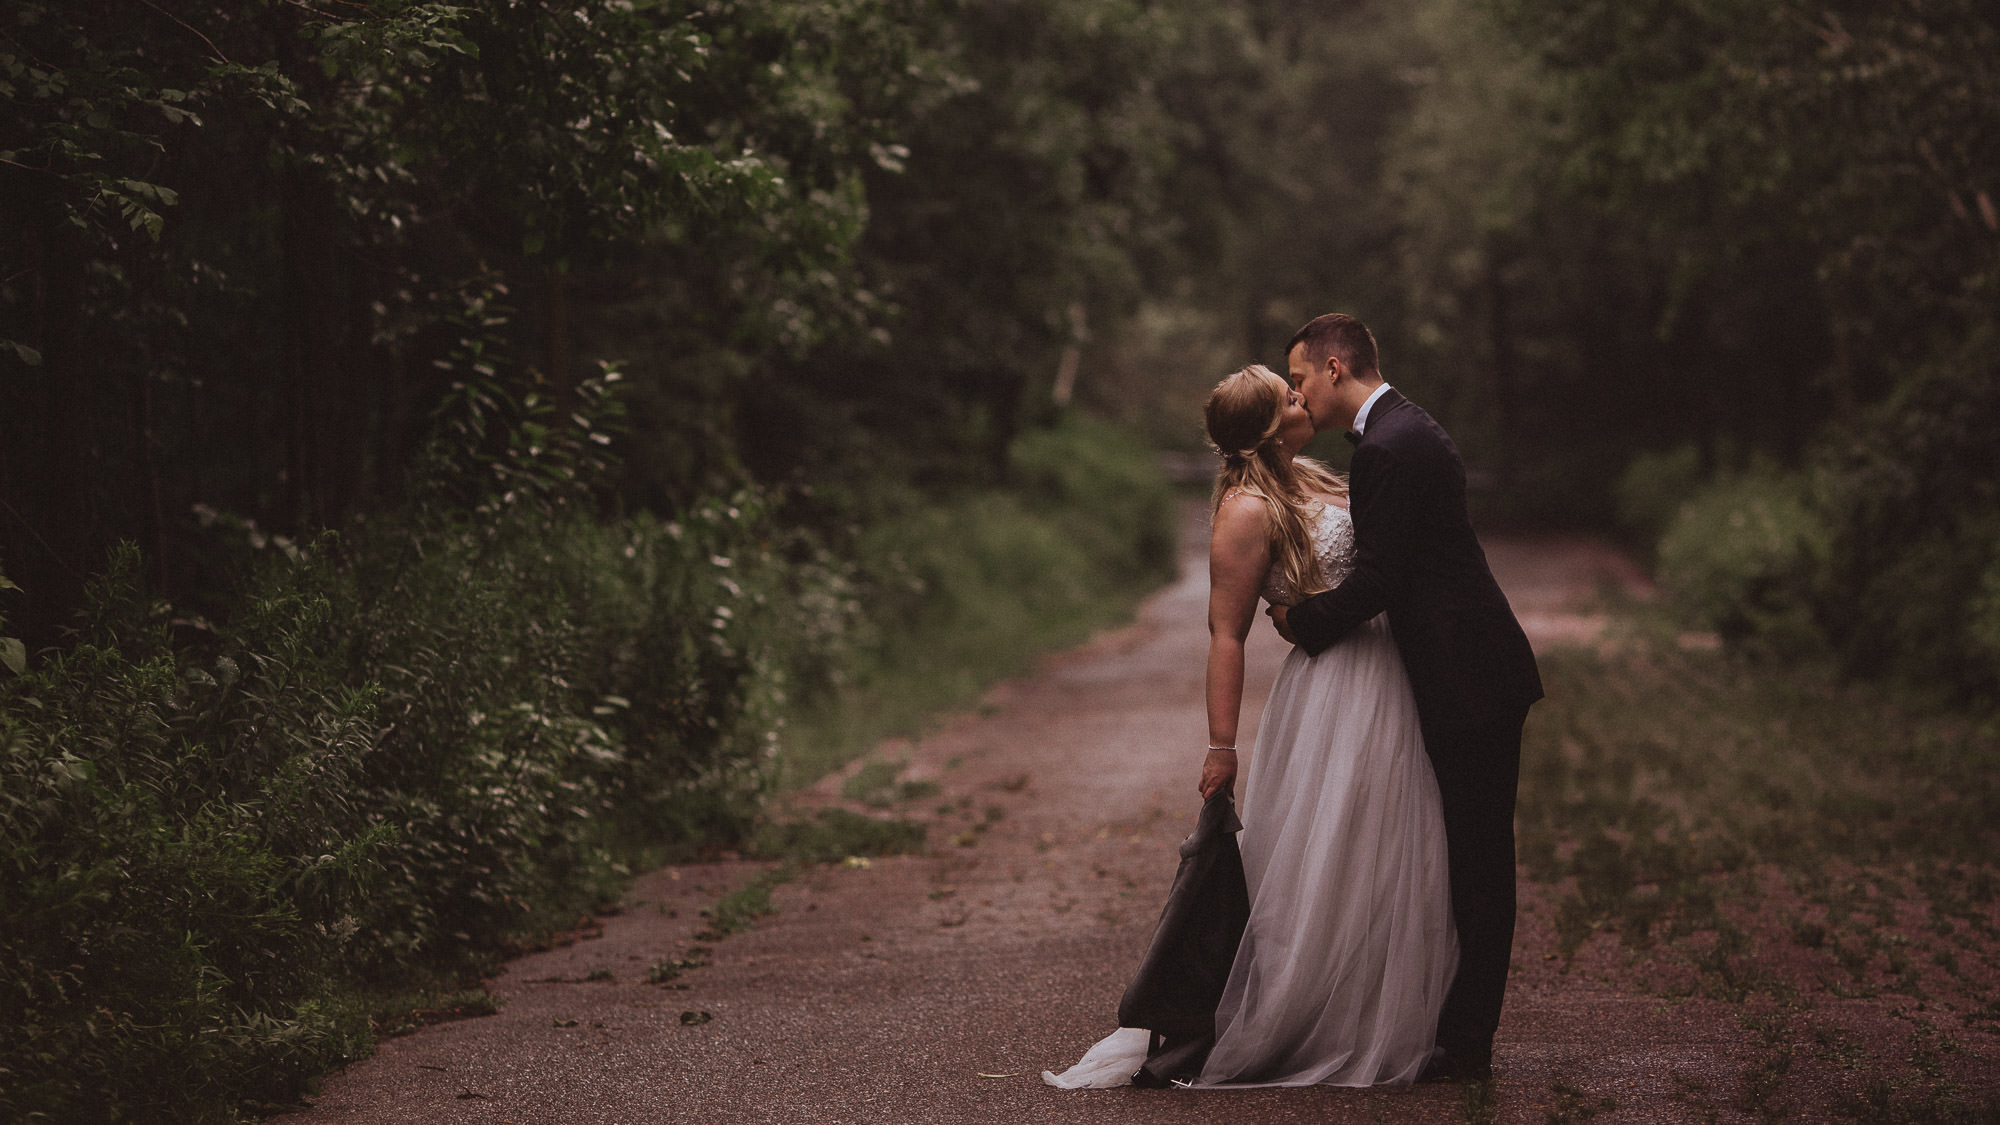 groom kisses bride on abandoned forested road